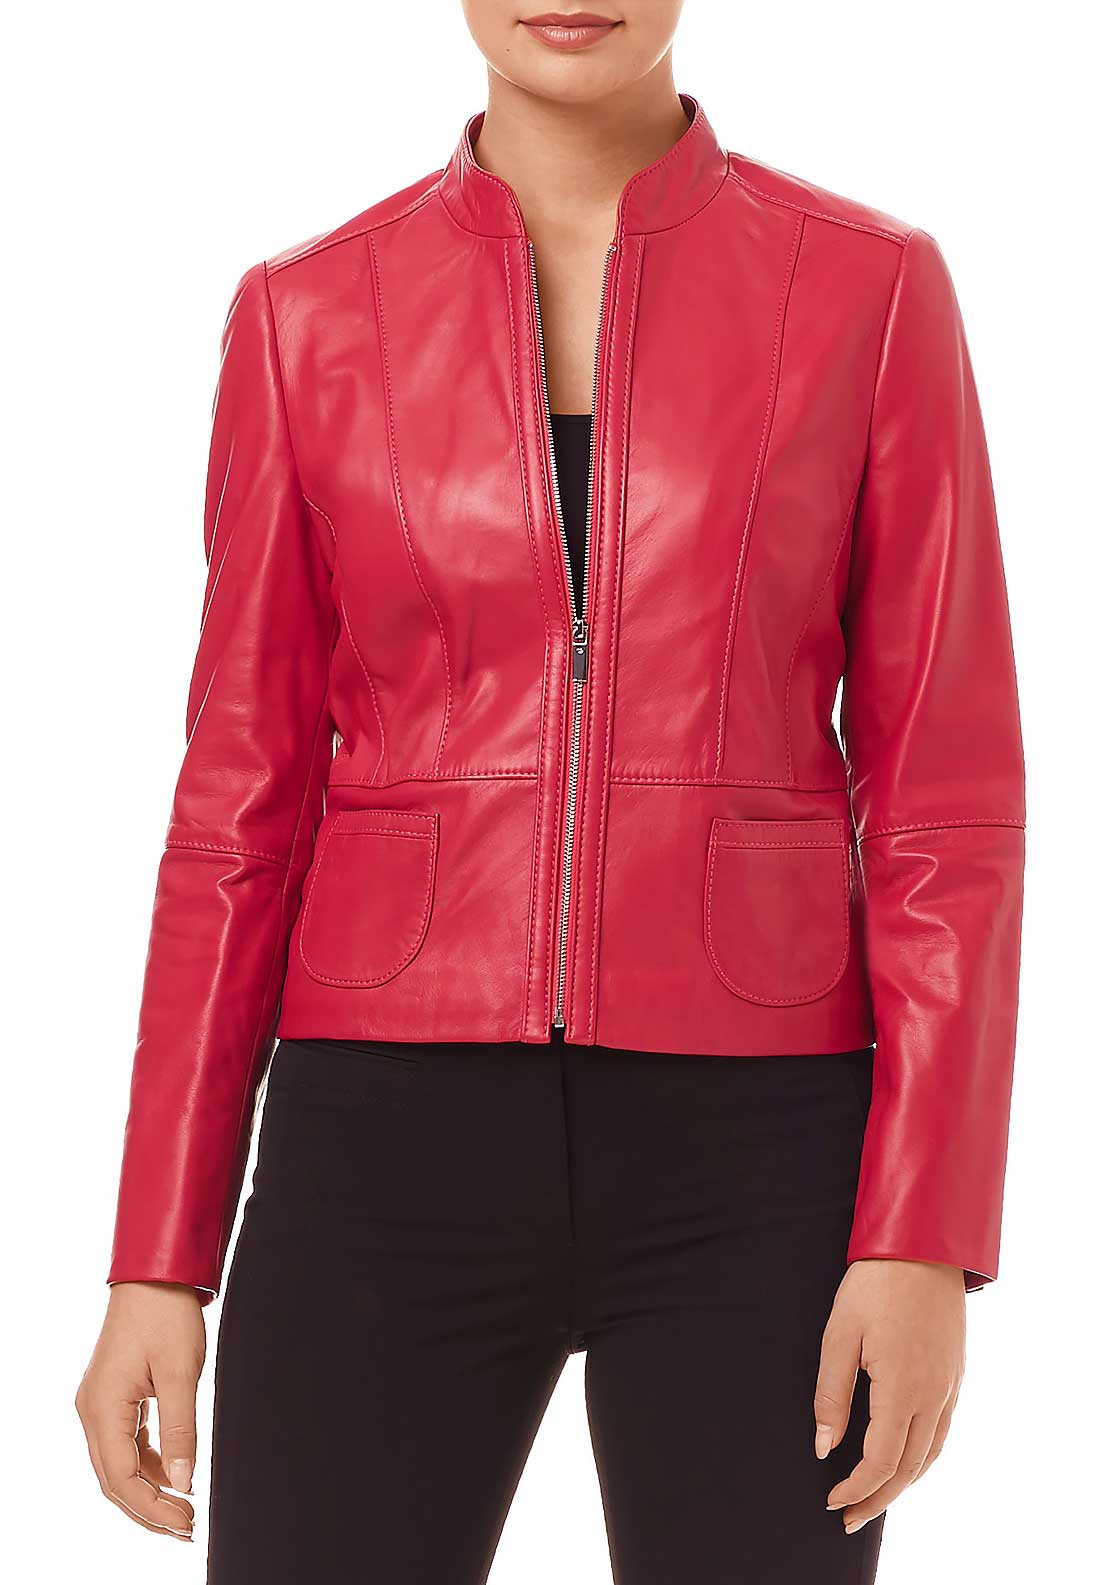 Gerry weber leather jacket